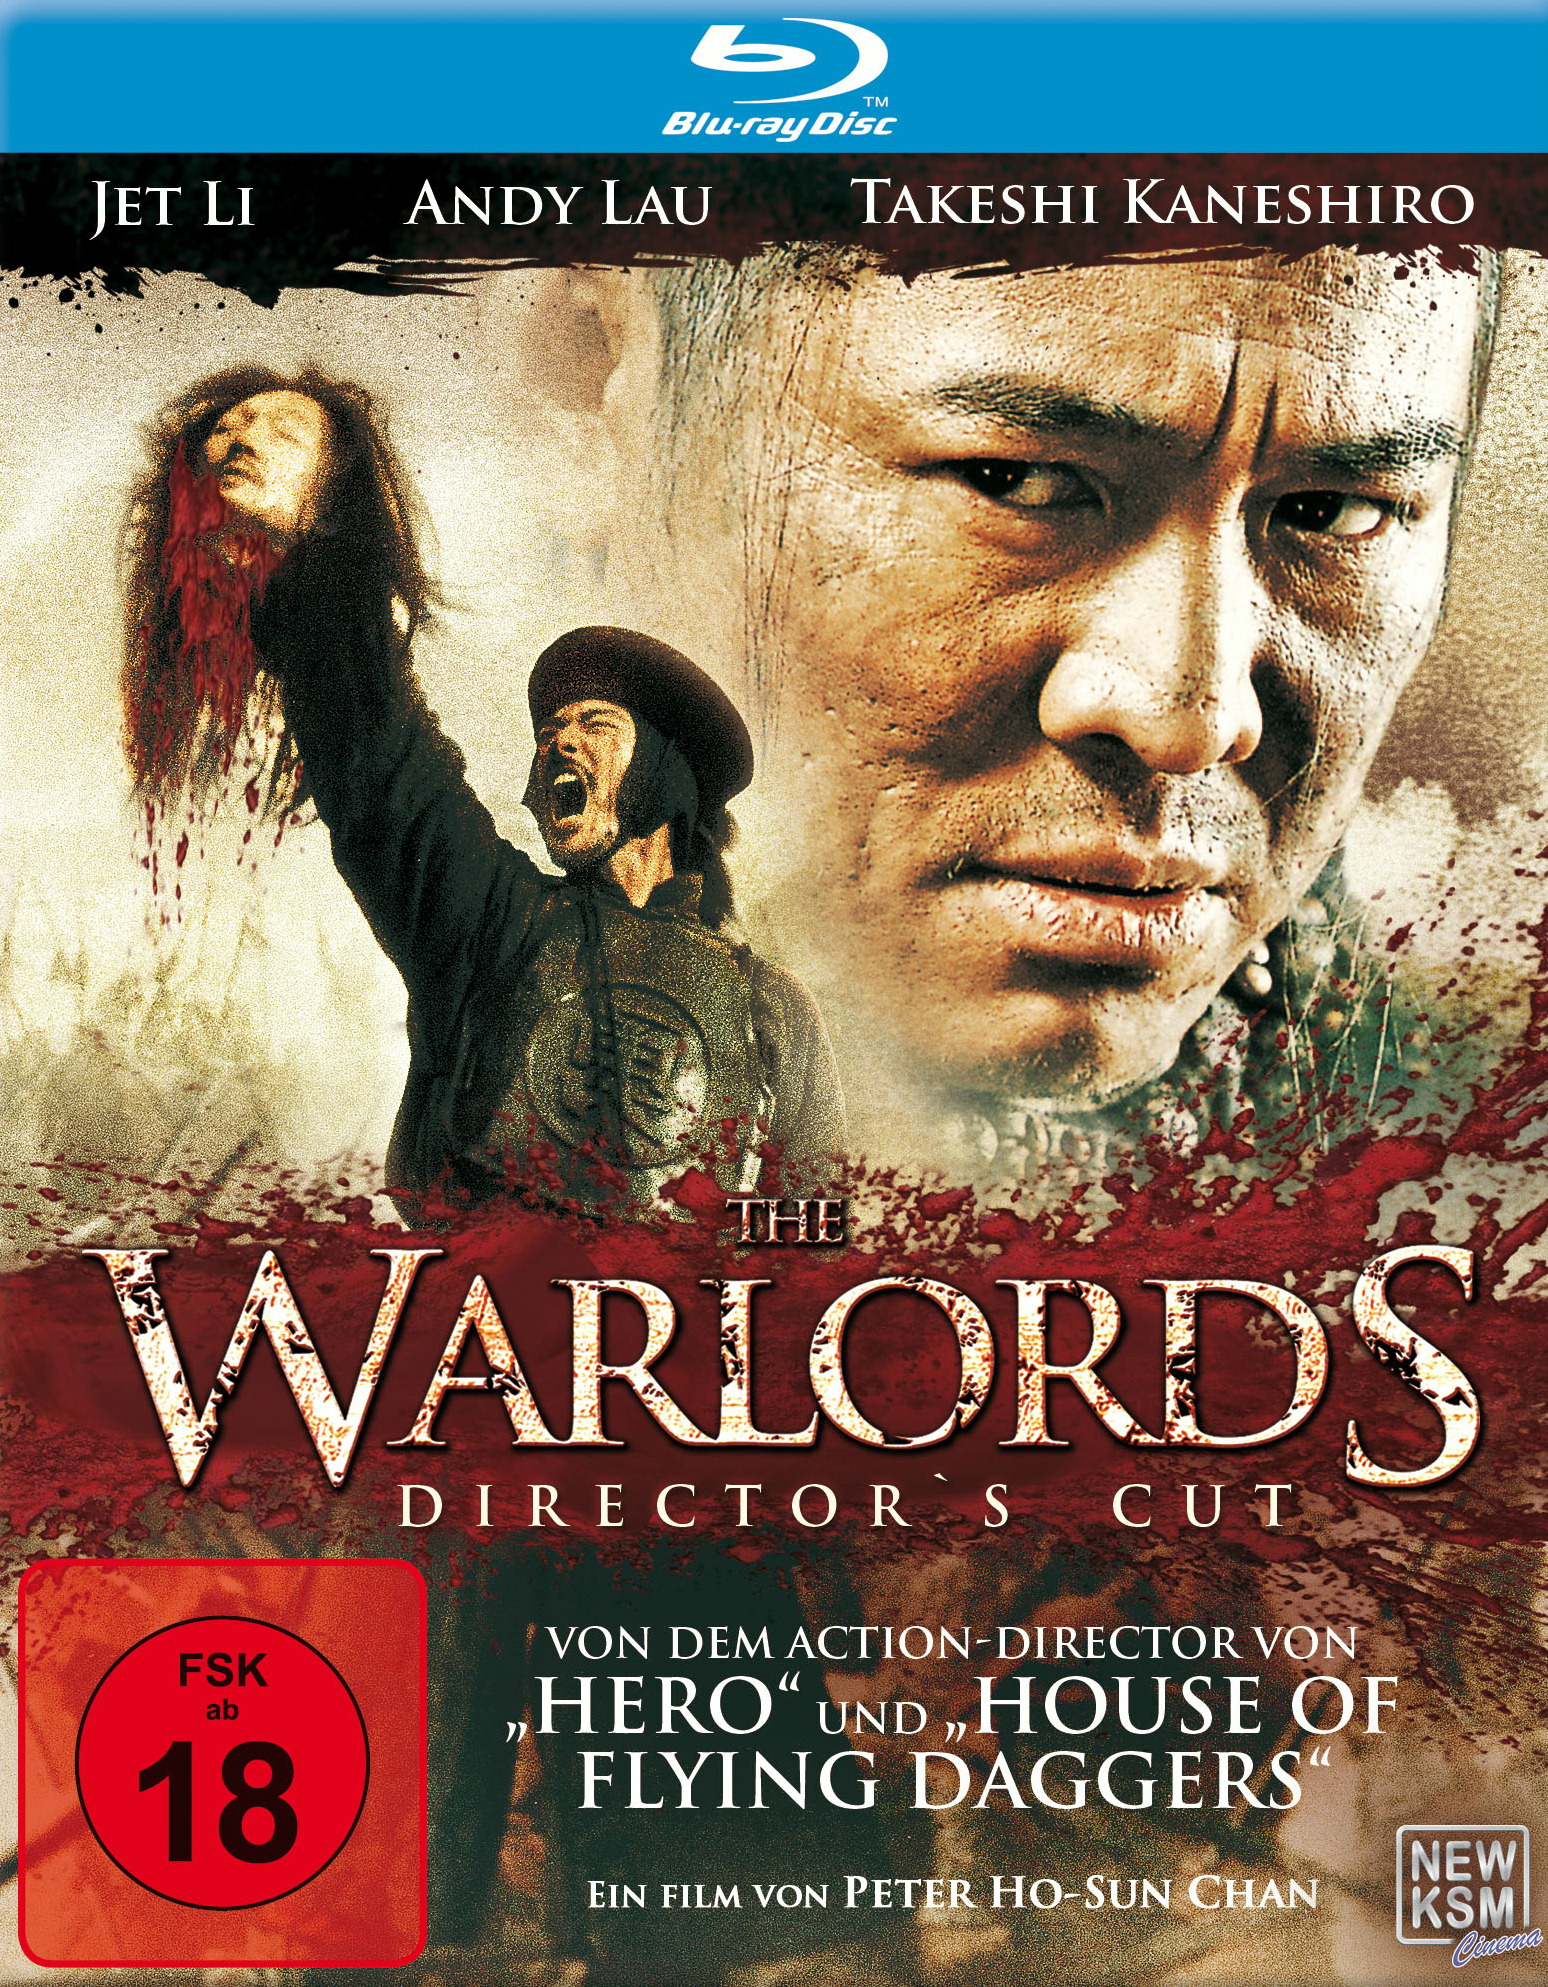 The Warlords (Director's Cut) Poster